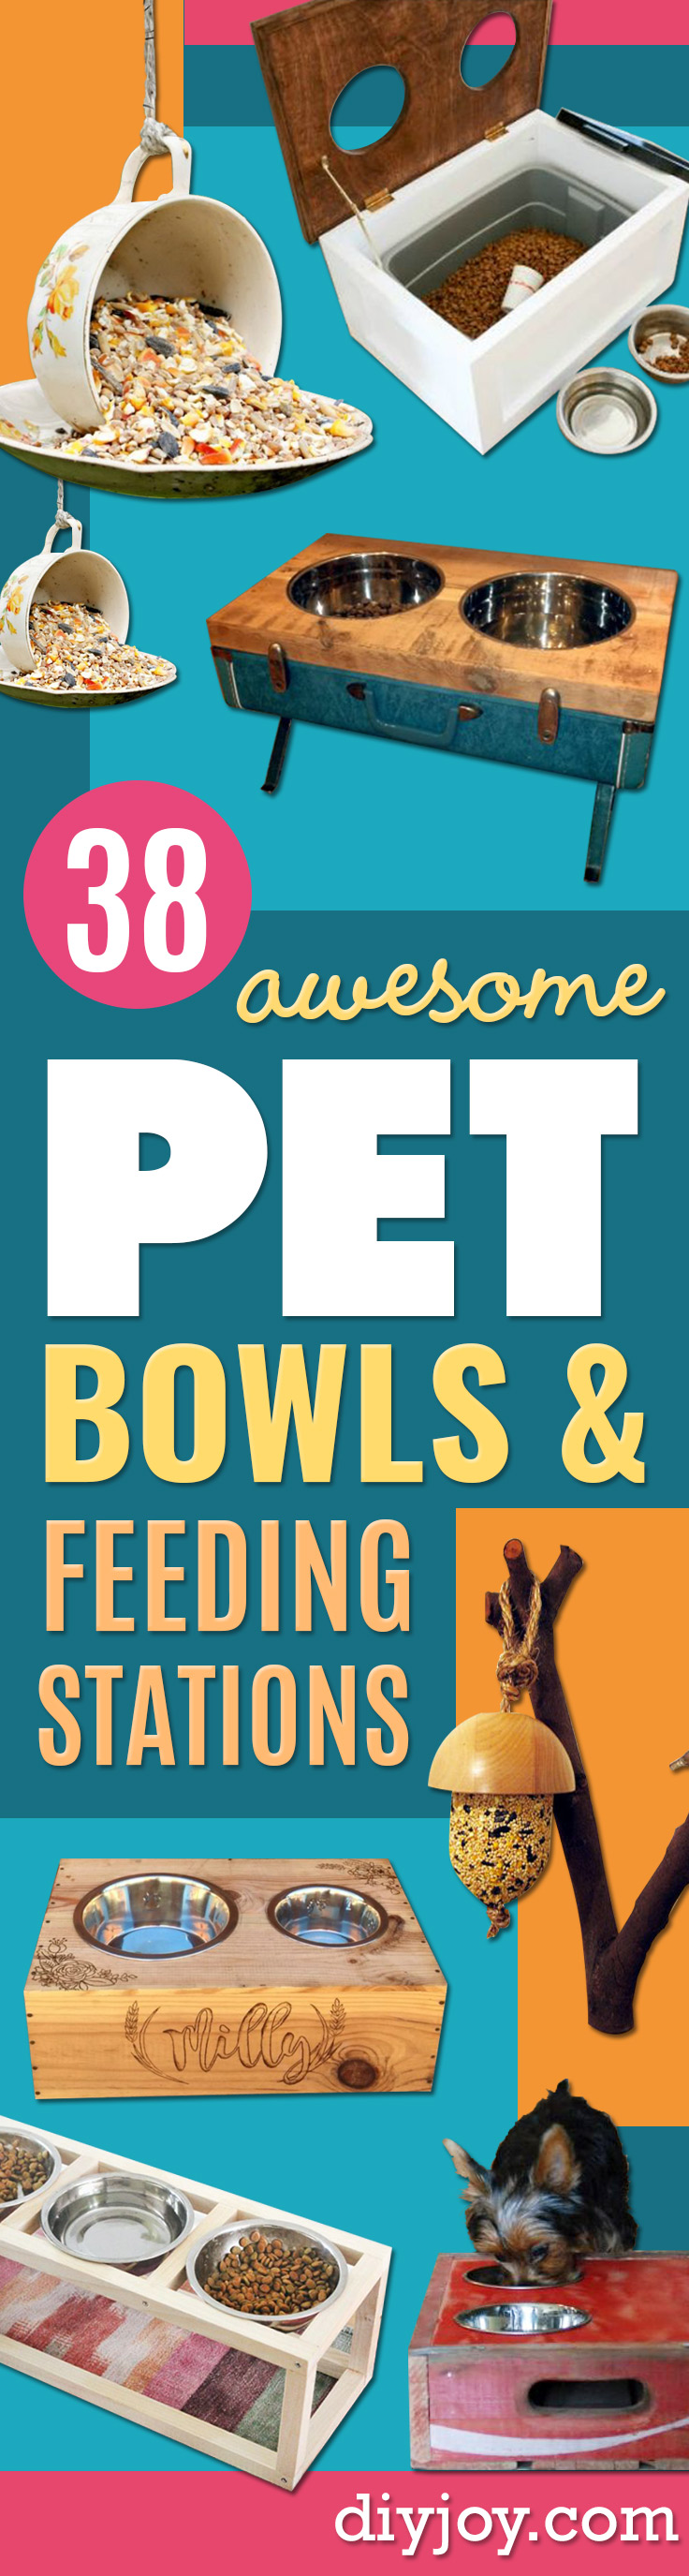 DIY Pet Bowls And Feeding Stations - Easy Ideas for Serving Dog and Cat Food, Ways to Raise and Store Bowls - Organize Your Dog Food and Water Bowl With These Cute and Creative Ideas for Dogs and Cats- Monogram, Painted, Personalized and Rustic Crafts and Projects http://diyjoy.com/diy-pet-bowls-feeding-station